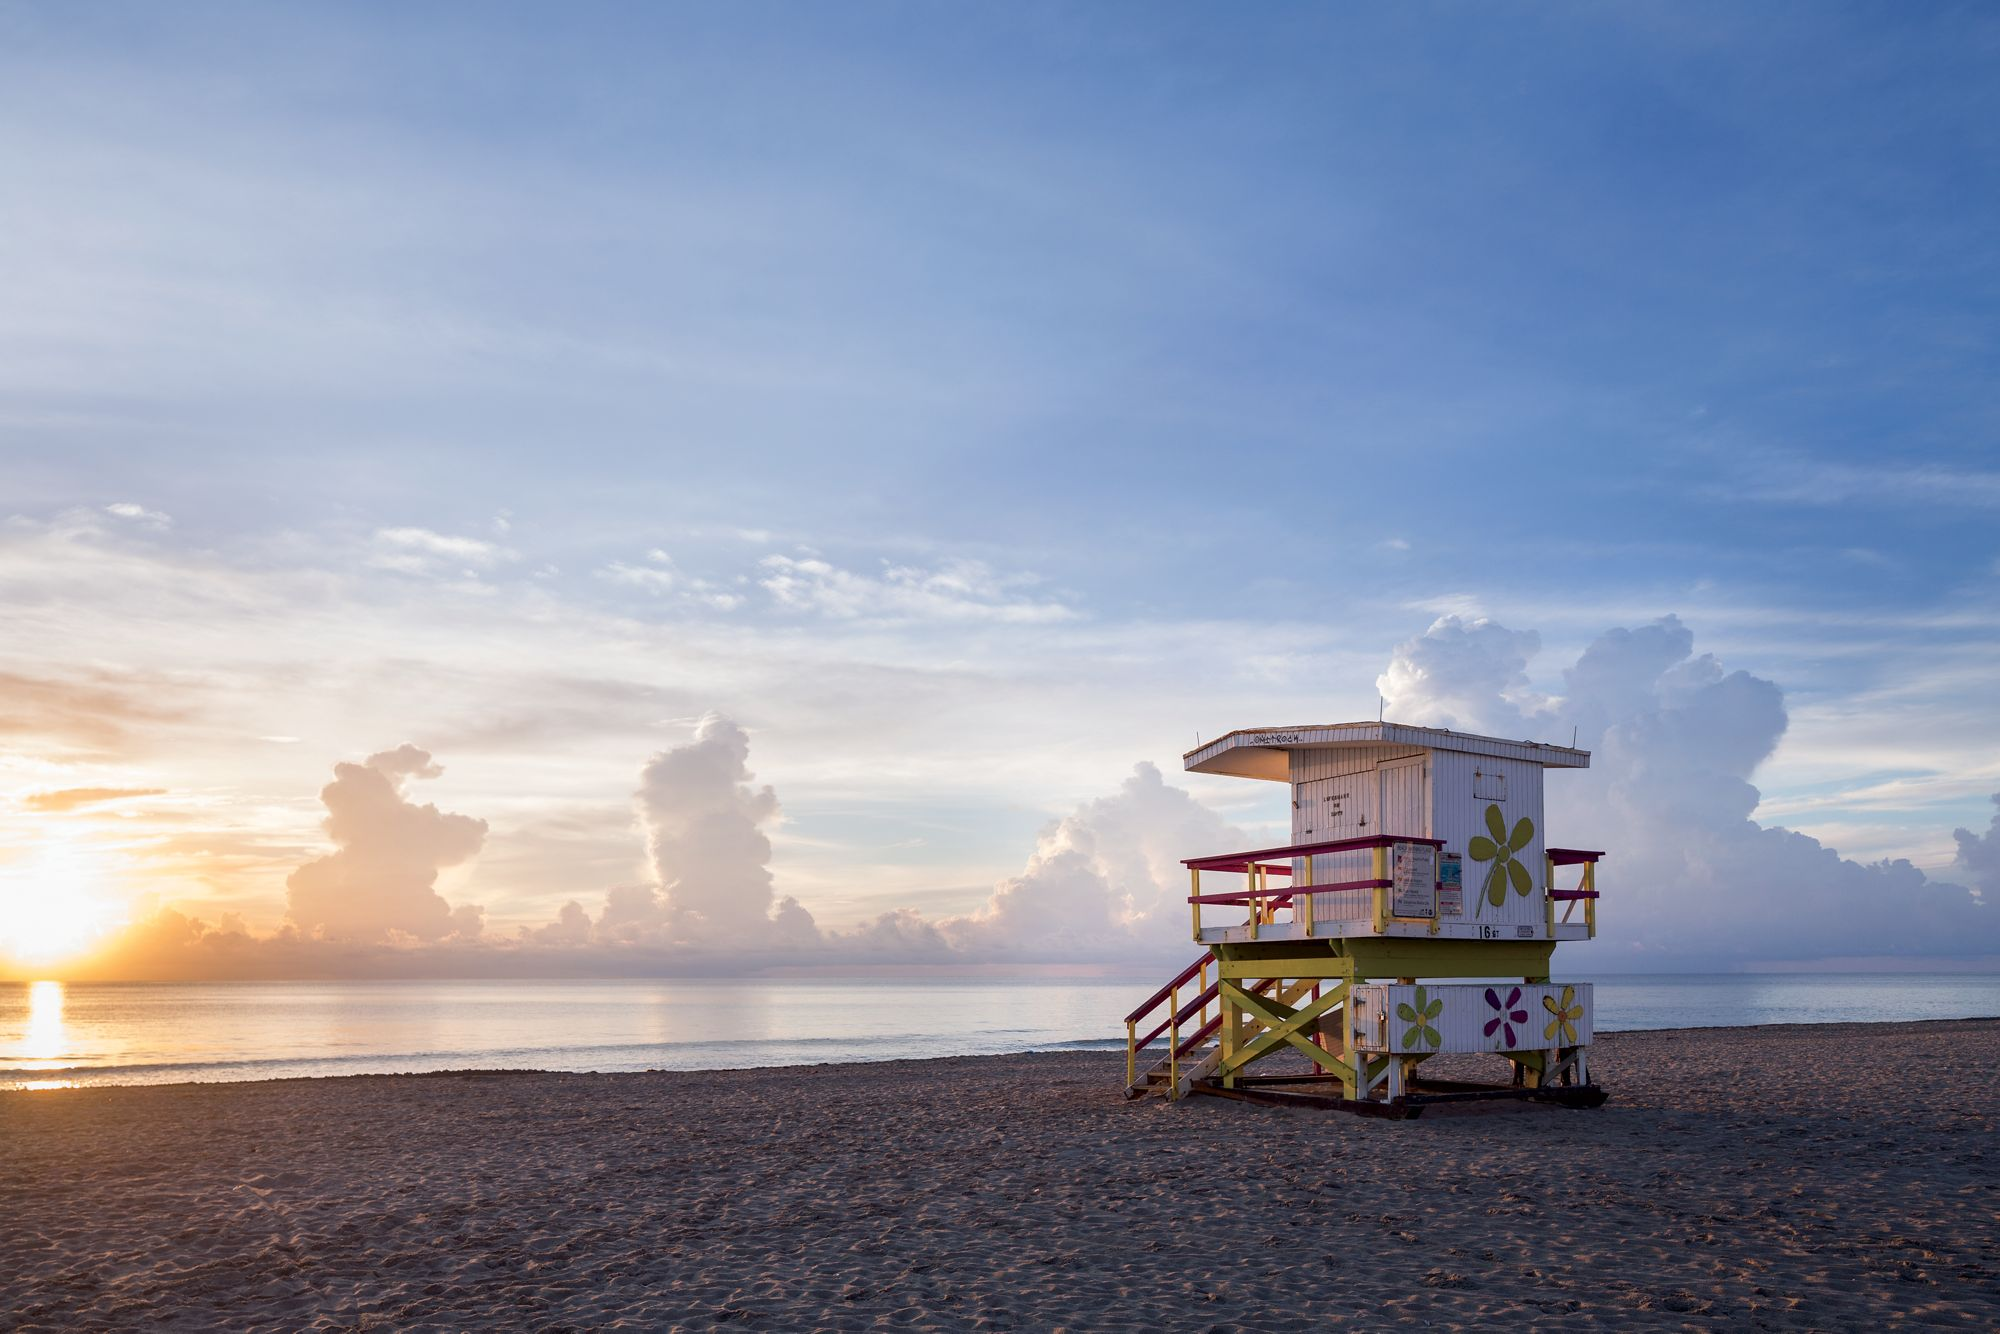 Ritz Carlton South Beach Hotel Furniture.jpeg